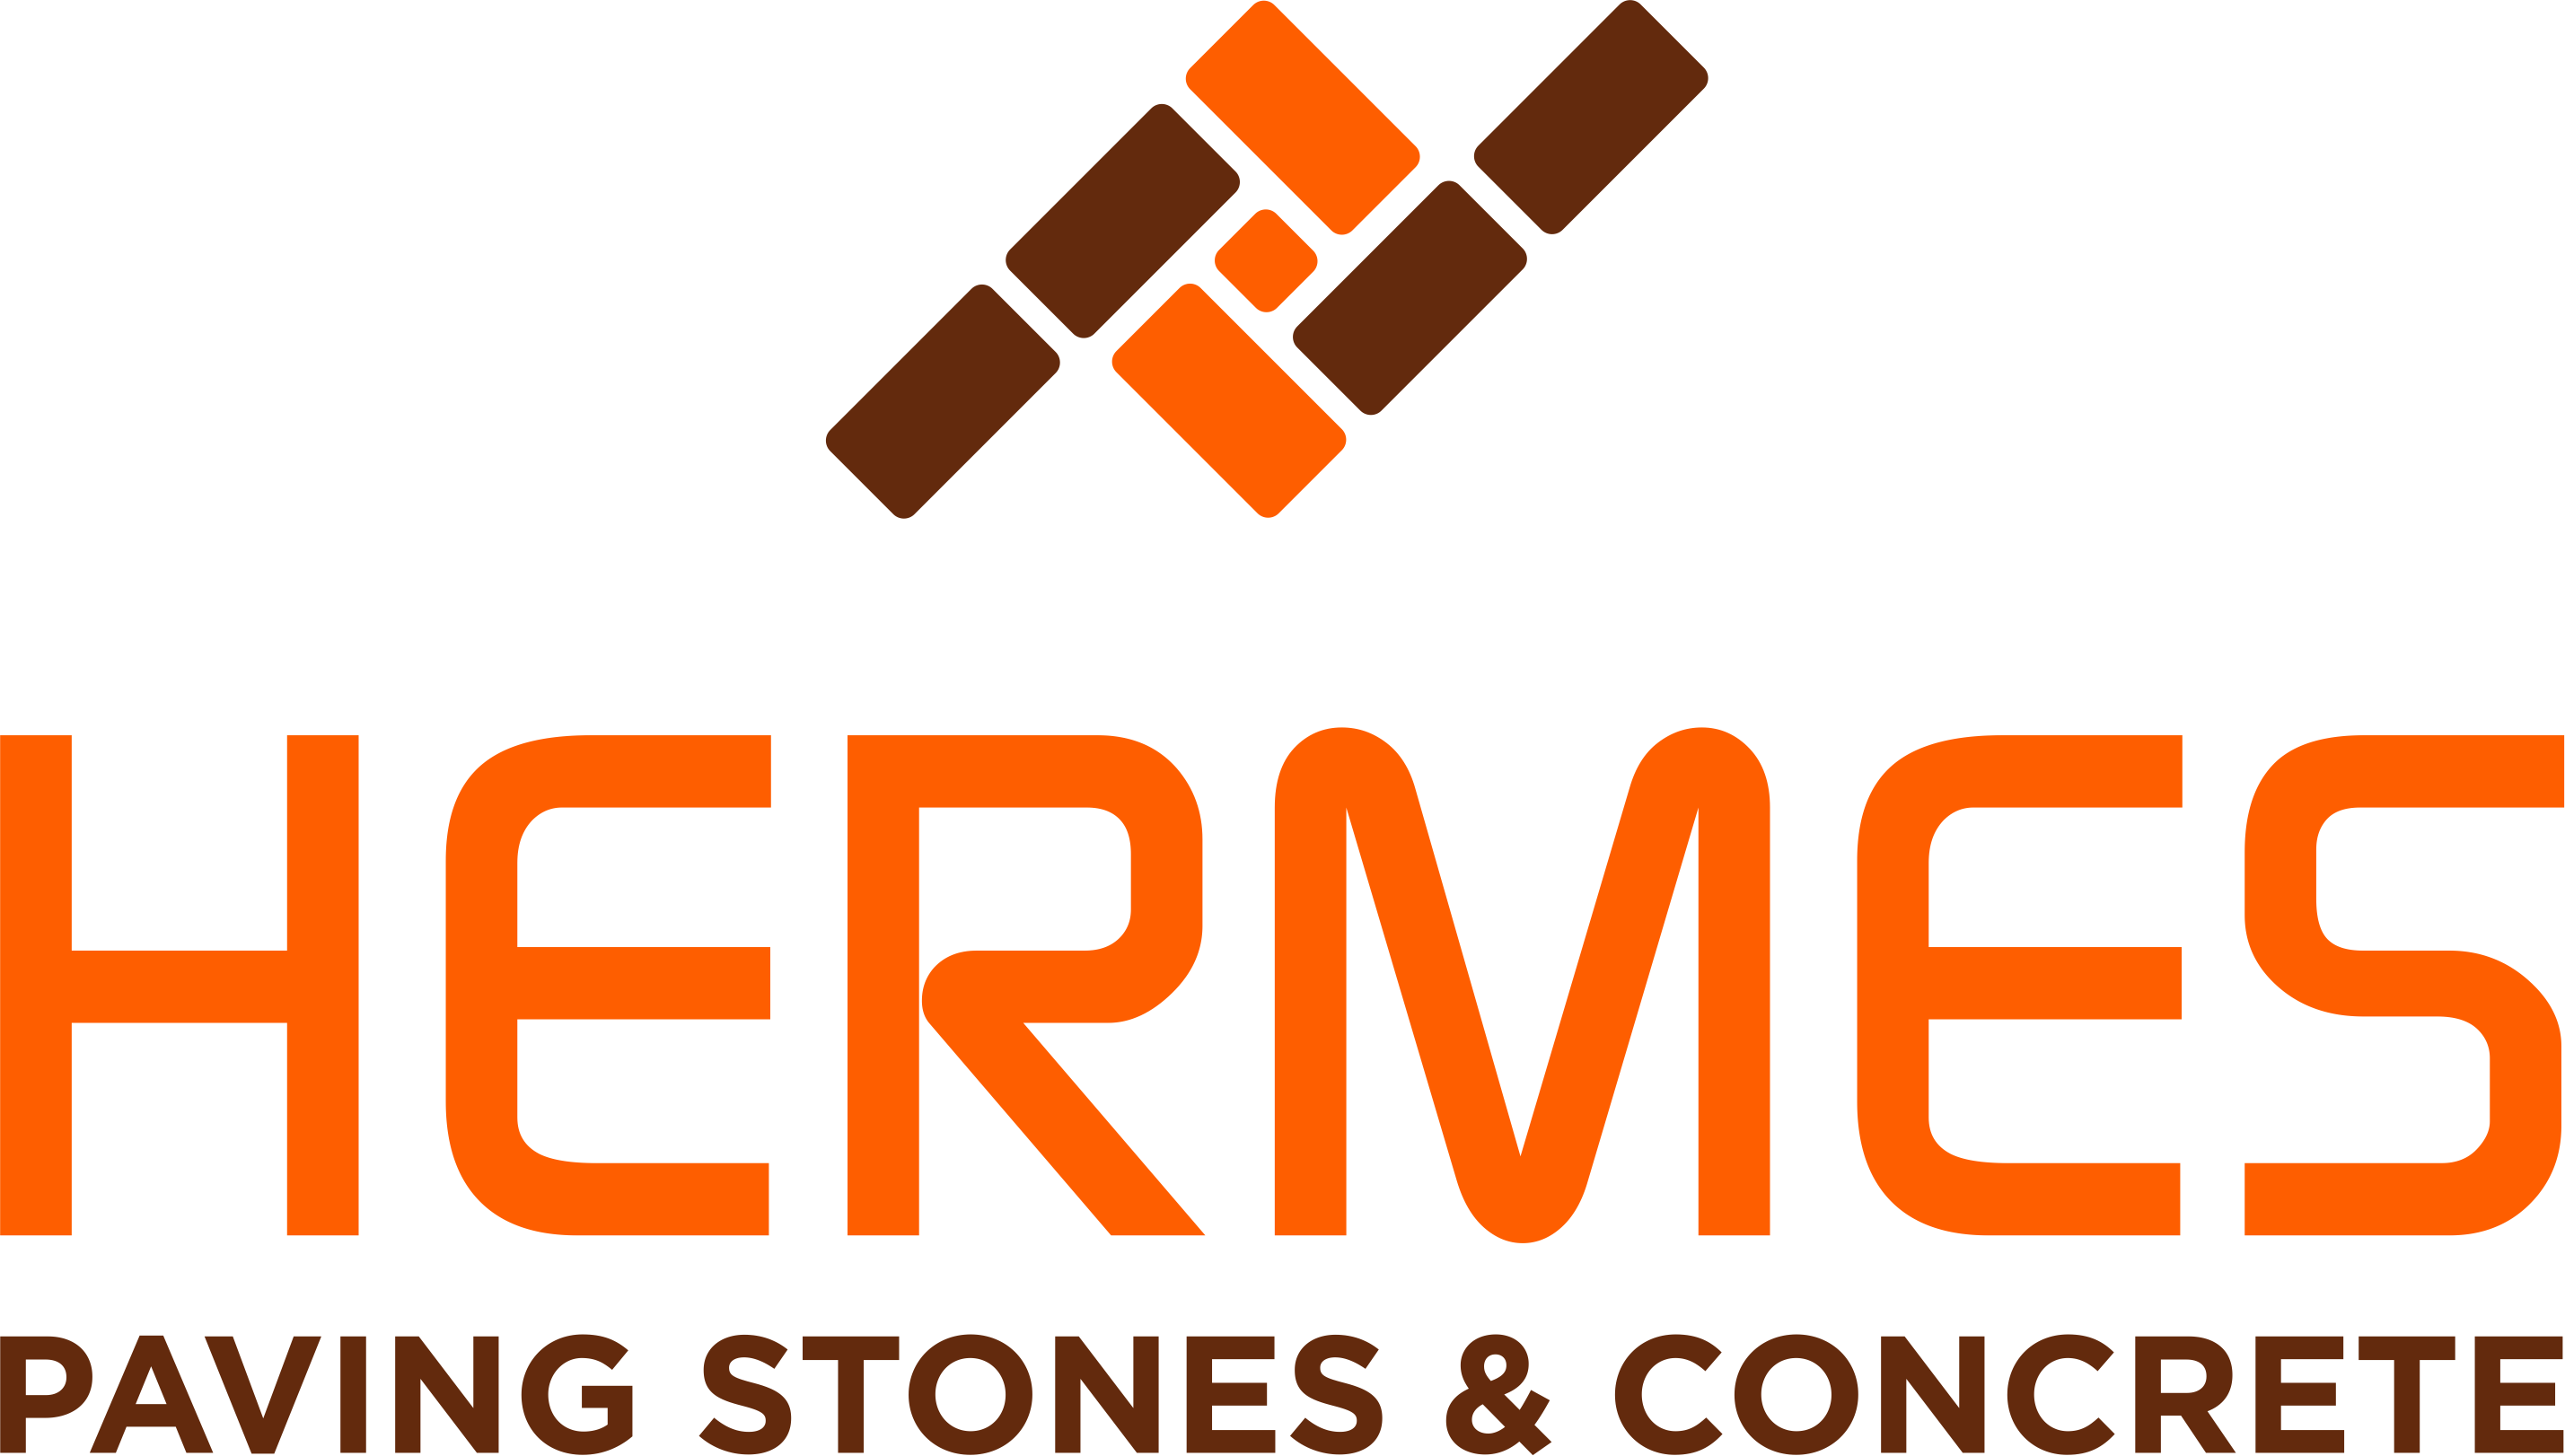 Hermes Paving Stones and Concrete